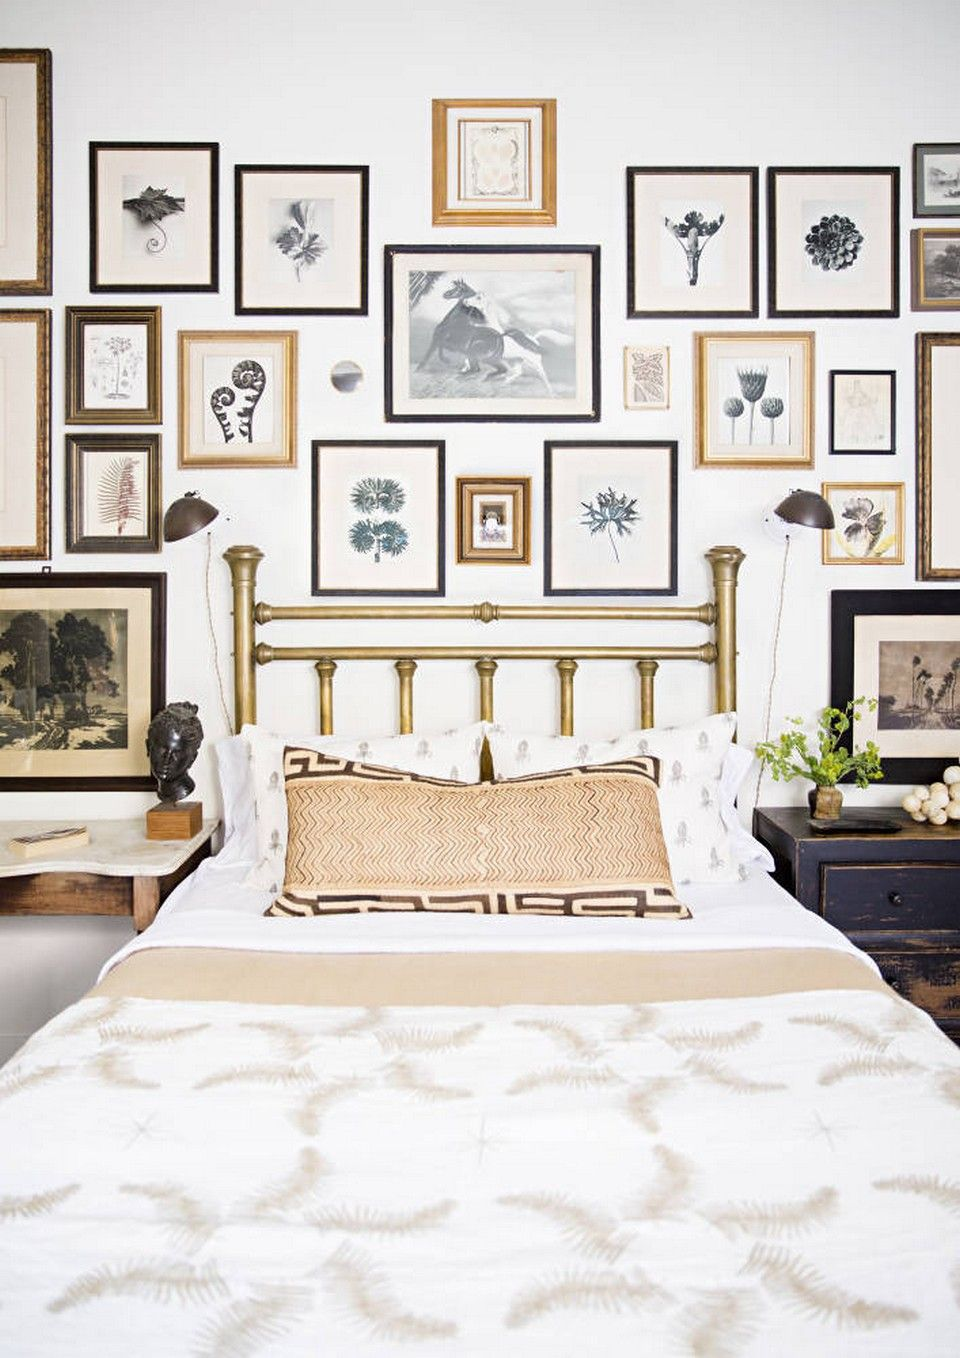 Bedroom Design Ideas On A Budget Cool 95 Brilliant Romantic Bedroom Design Ideas On A Budget  Romantic Review